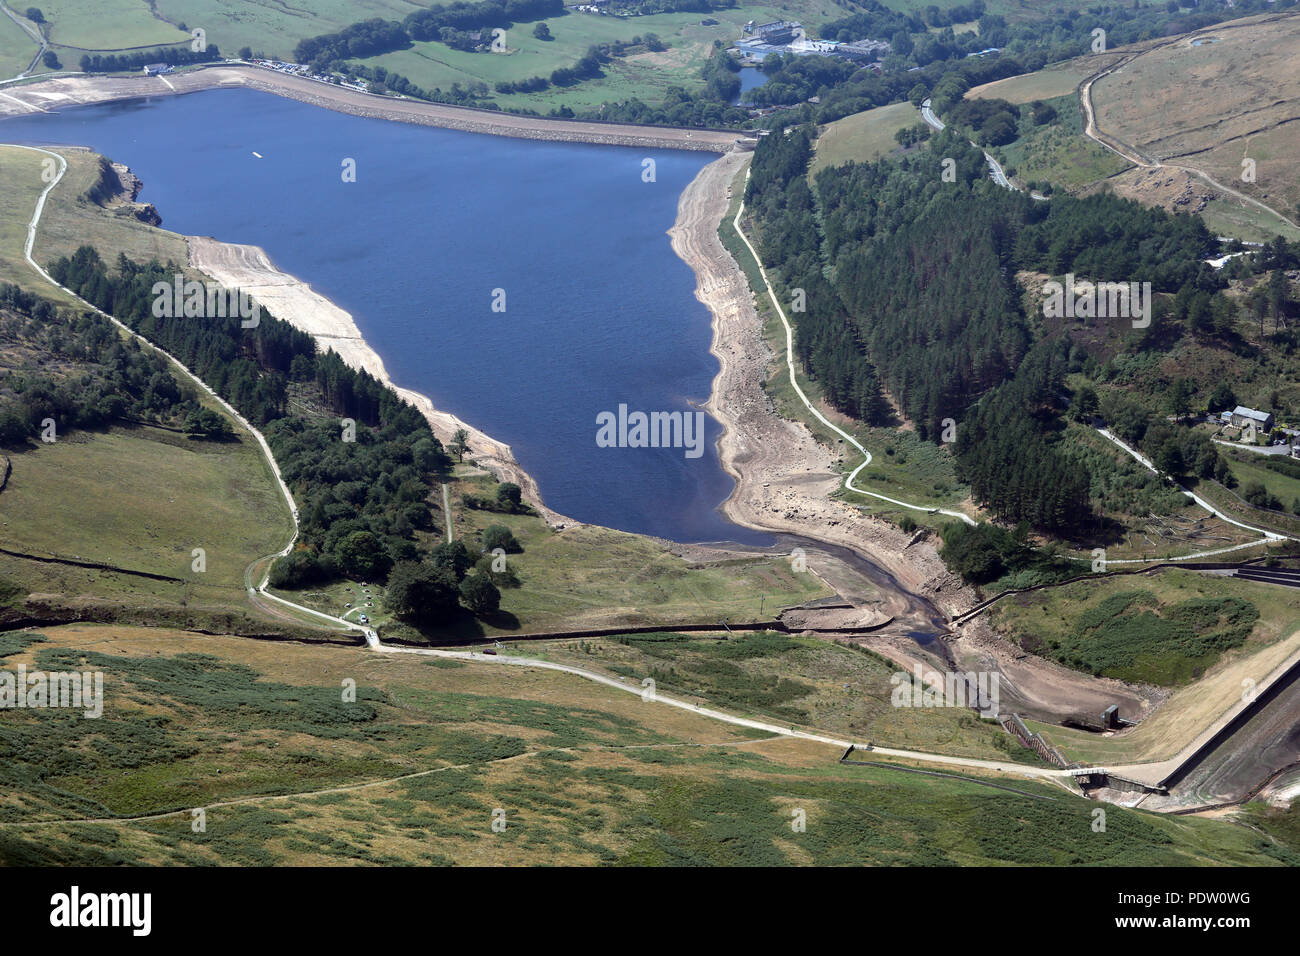 aerial view of a reservoir with low water levels near Manchester - Stock Image